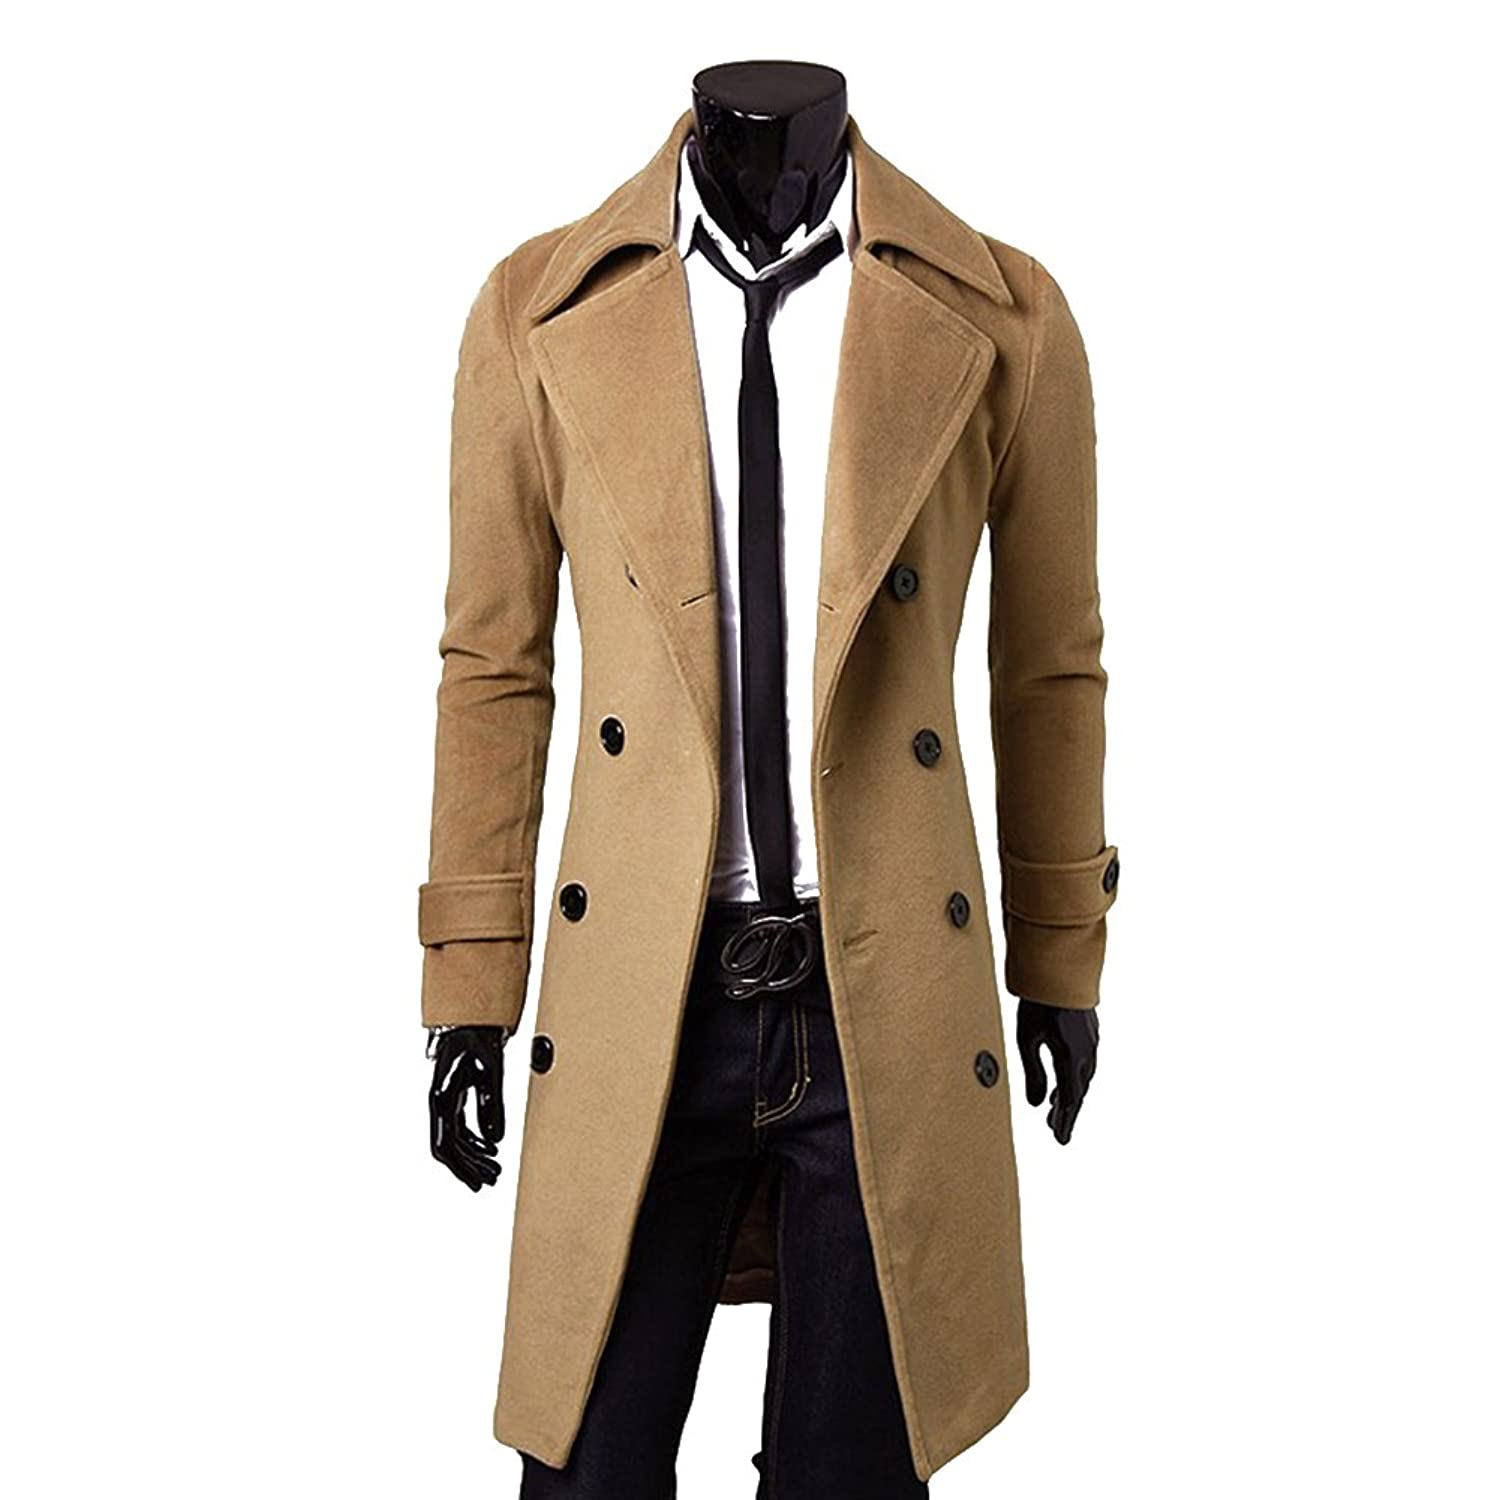 Highdas Mens Trench Coat Double-Breasted Slim Trench Coat